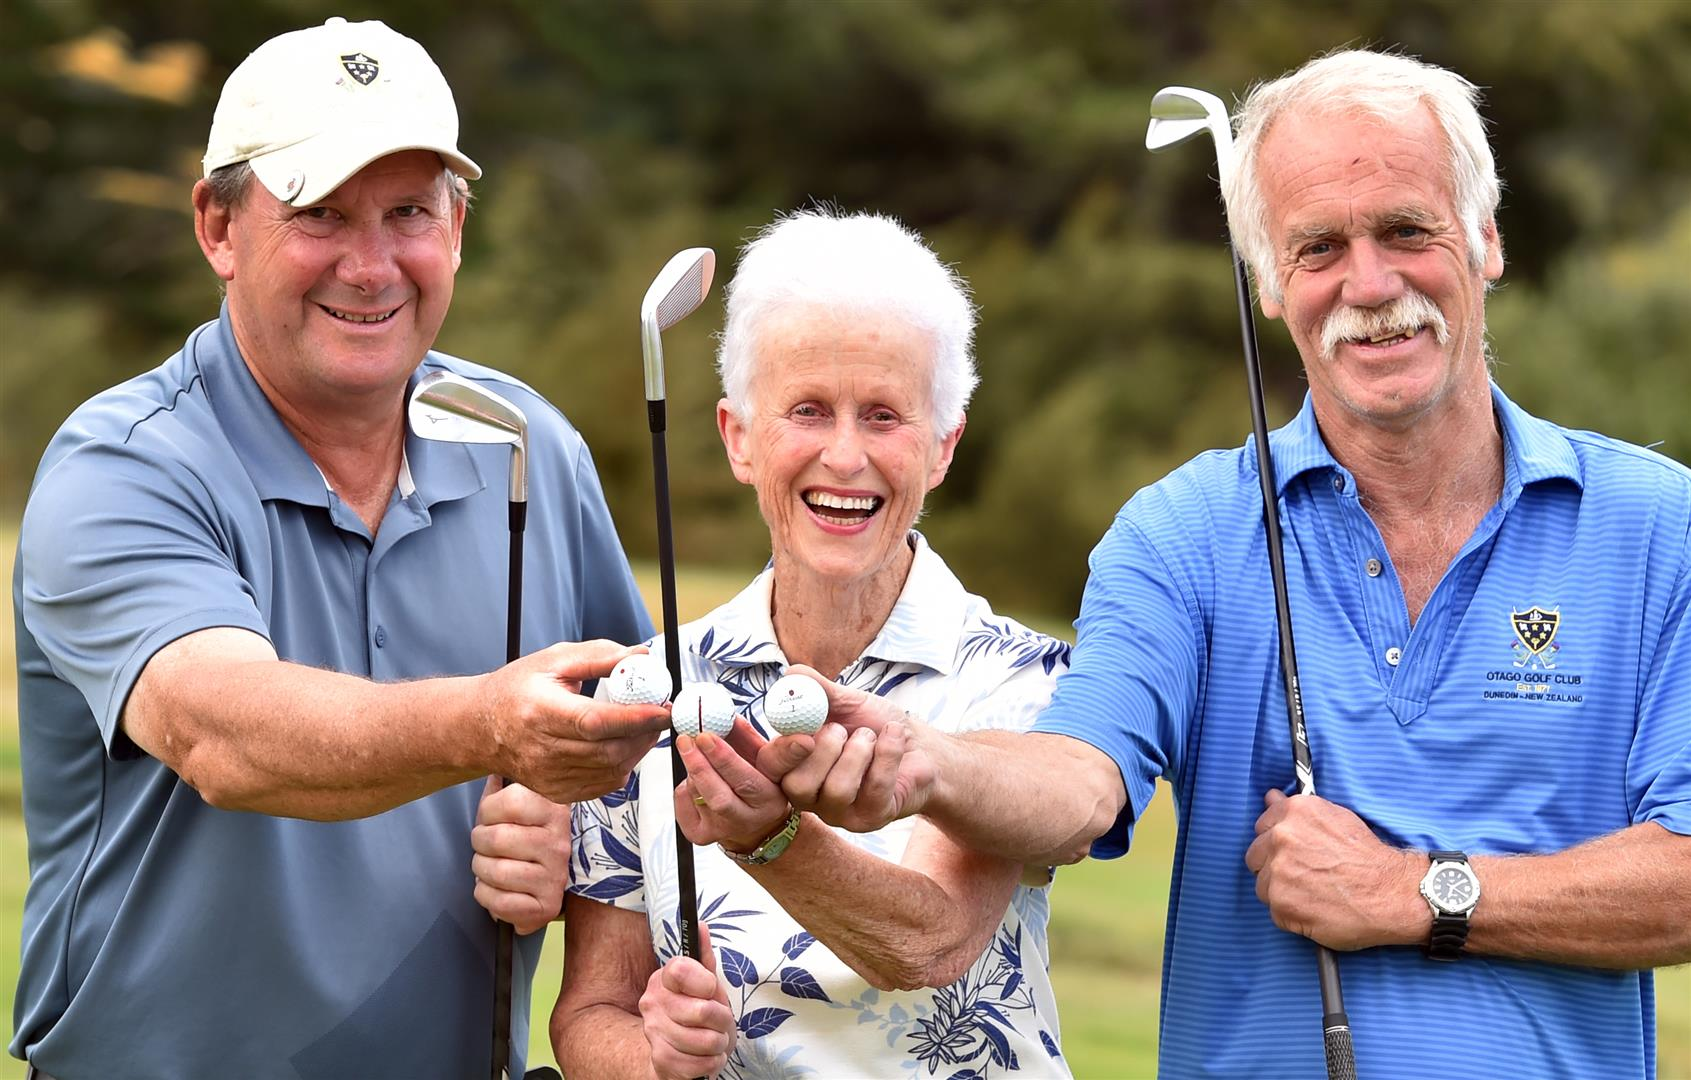 Celebrating their talents in each scoring a hole in one at the Otago Golf Club's Balmacewen course are (from left) Dean Parsons, Lillian Bartlett and Trevor King. Photo: Peter McIntosh